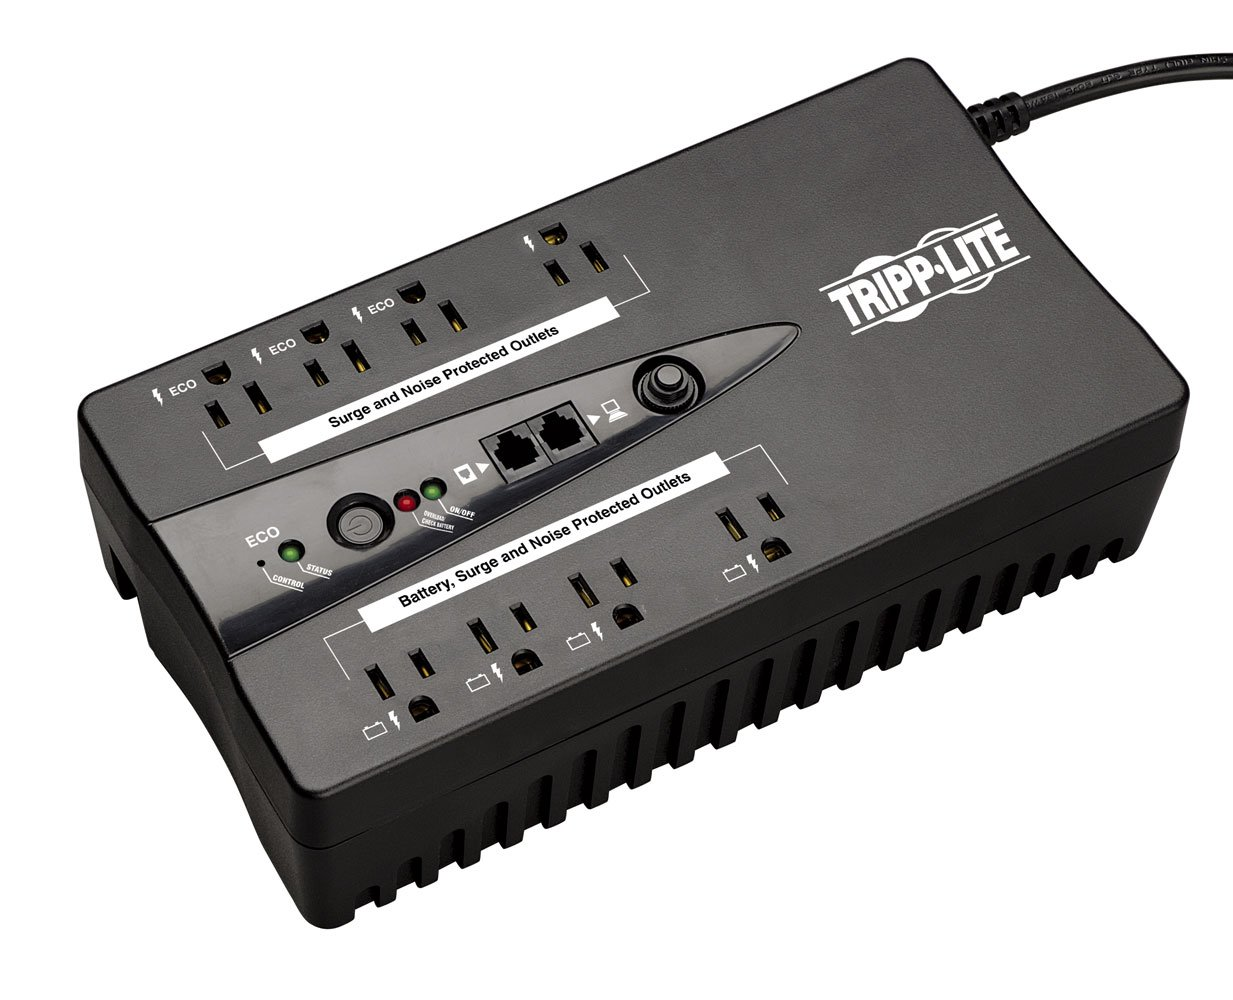 Tripp Lite ECO550UPSTAA 550VA 300W UPS Eco Green Battery Back Up 120V USB RJ11 TAA GSA, 8 Outlets by Tripp Lite